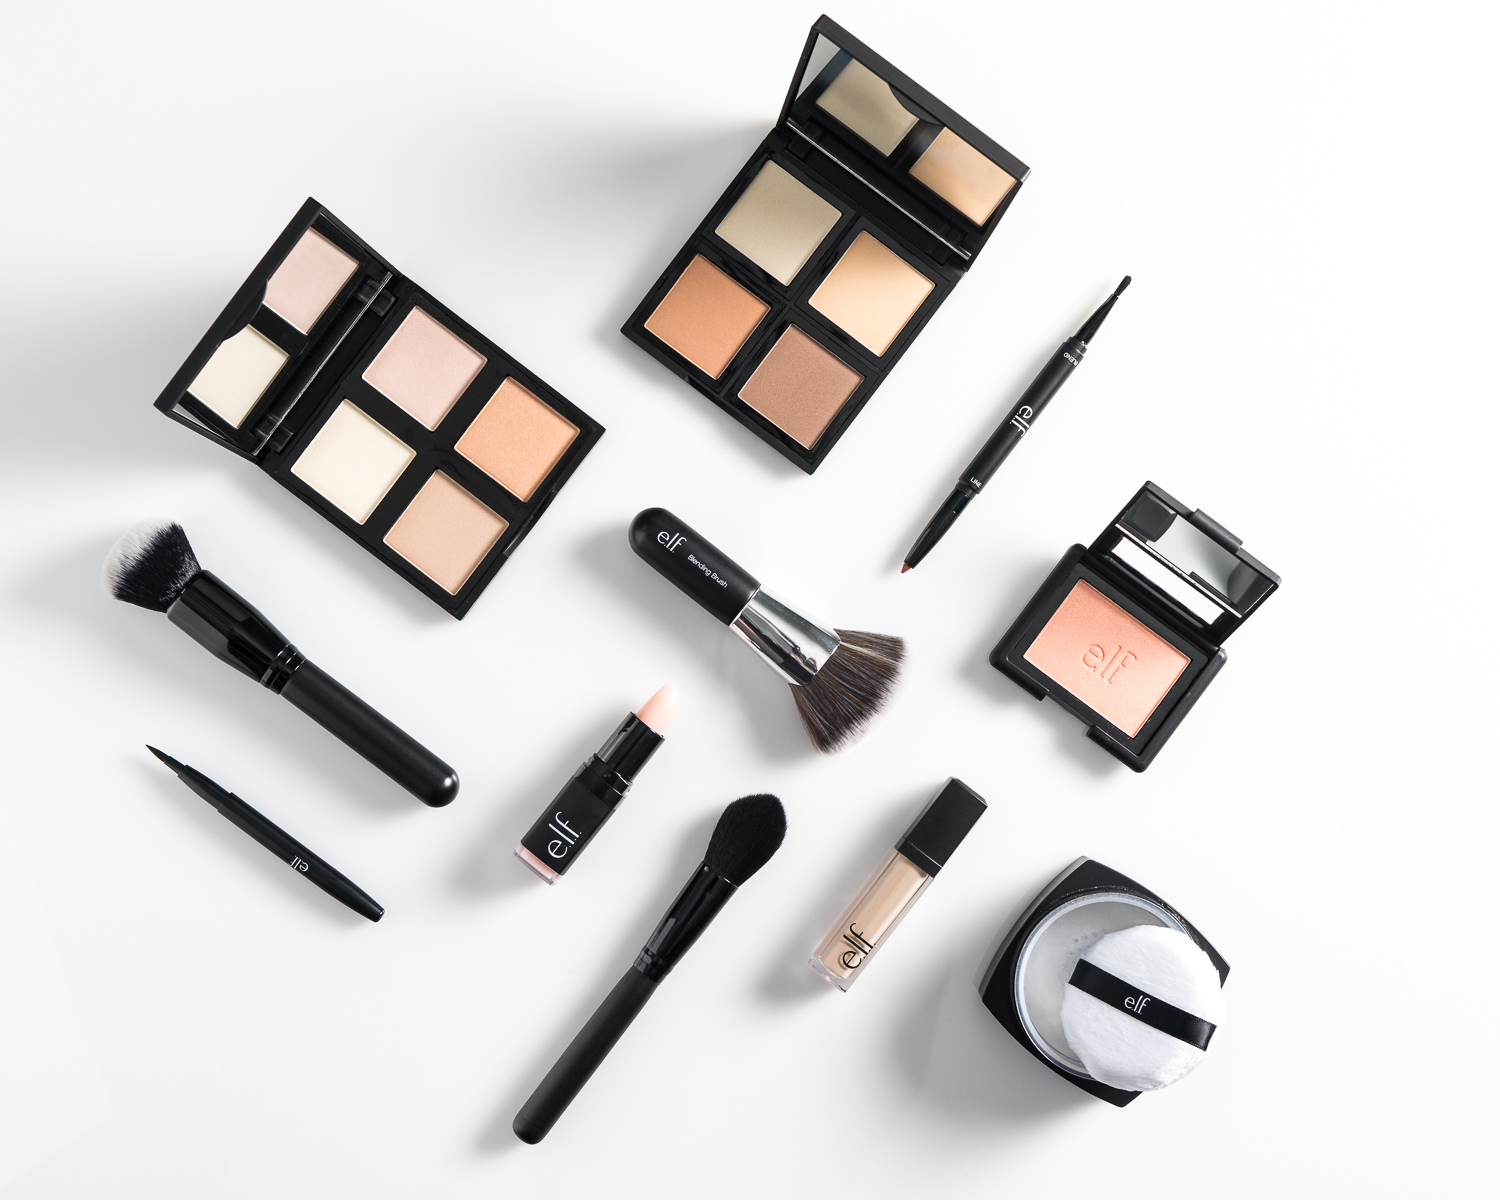 Elf Cosmetics flat lay on a white background